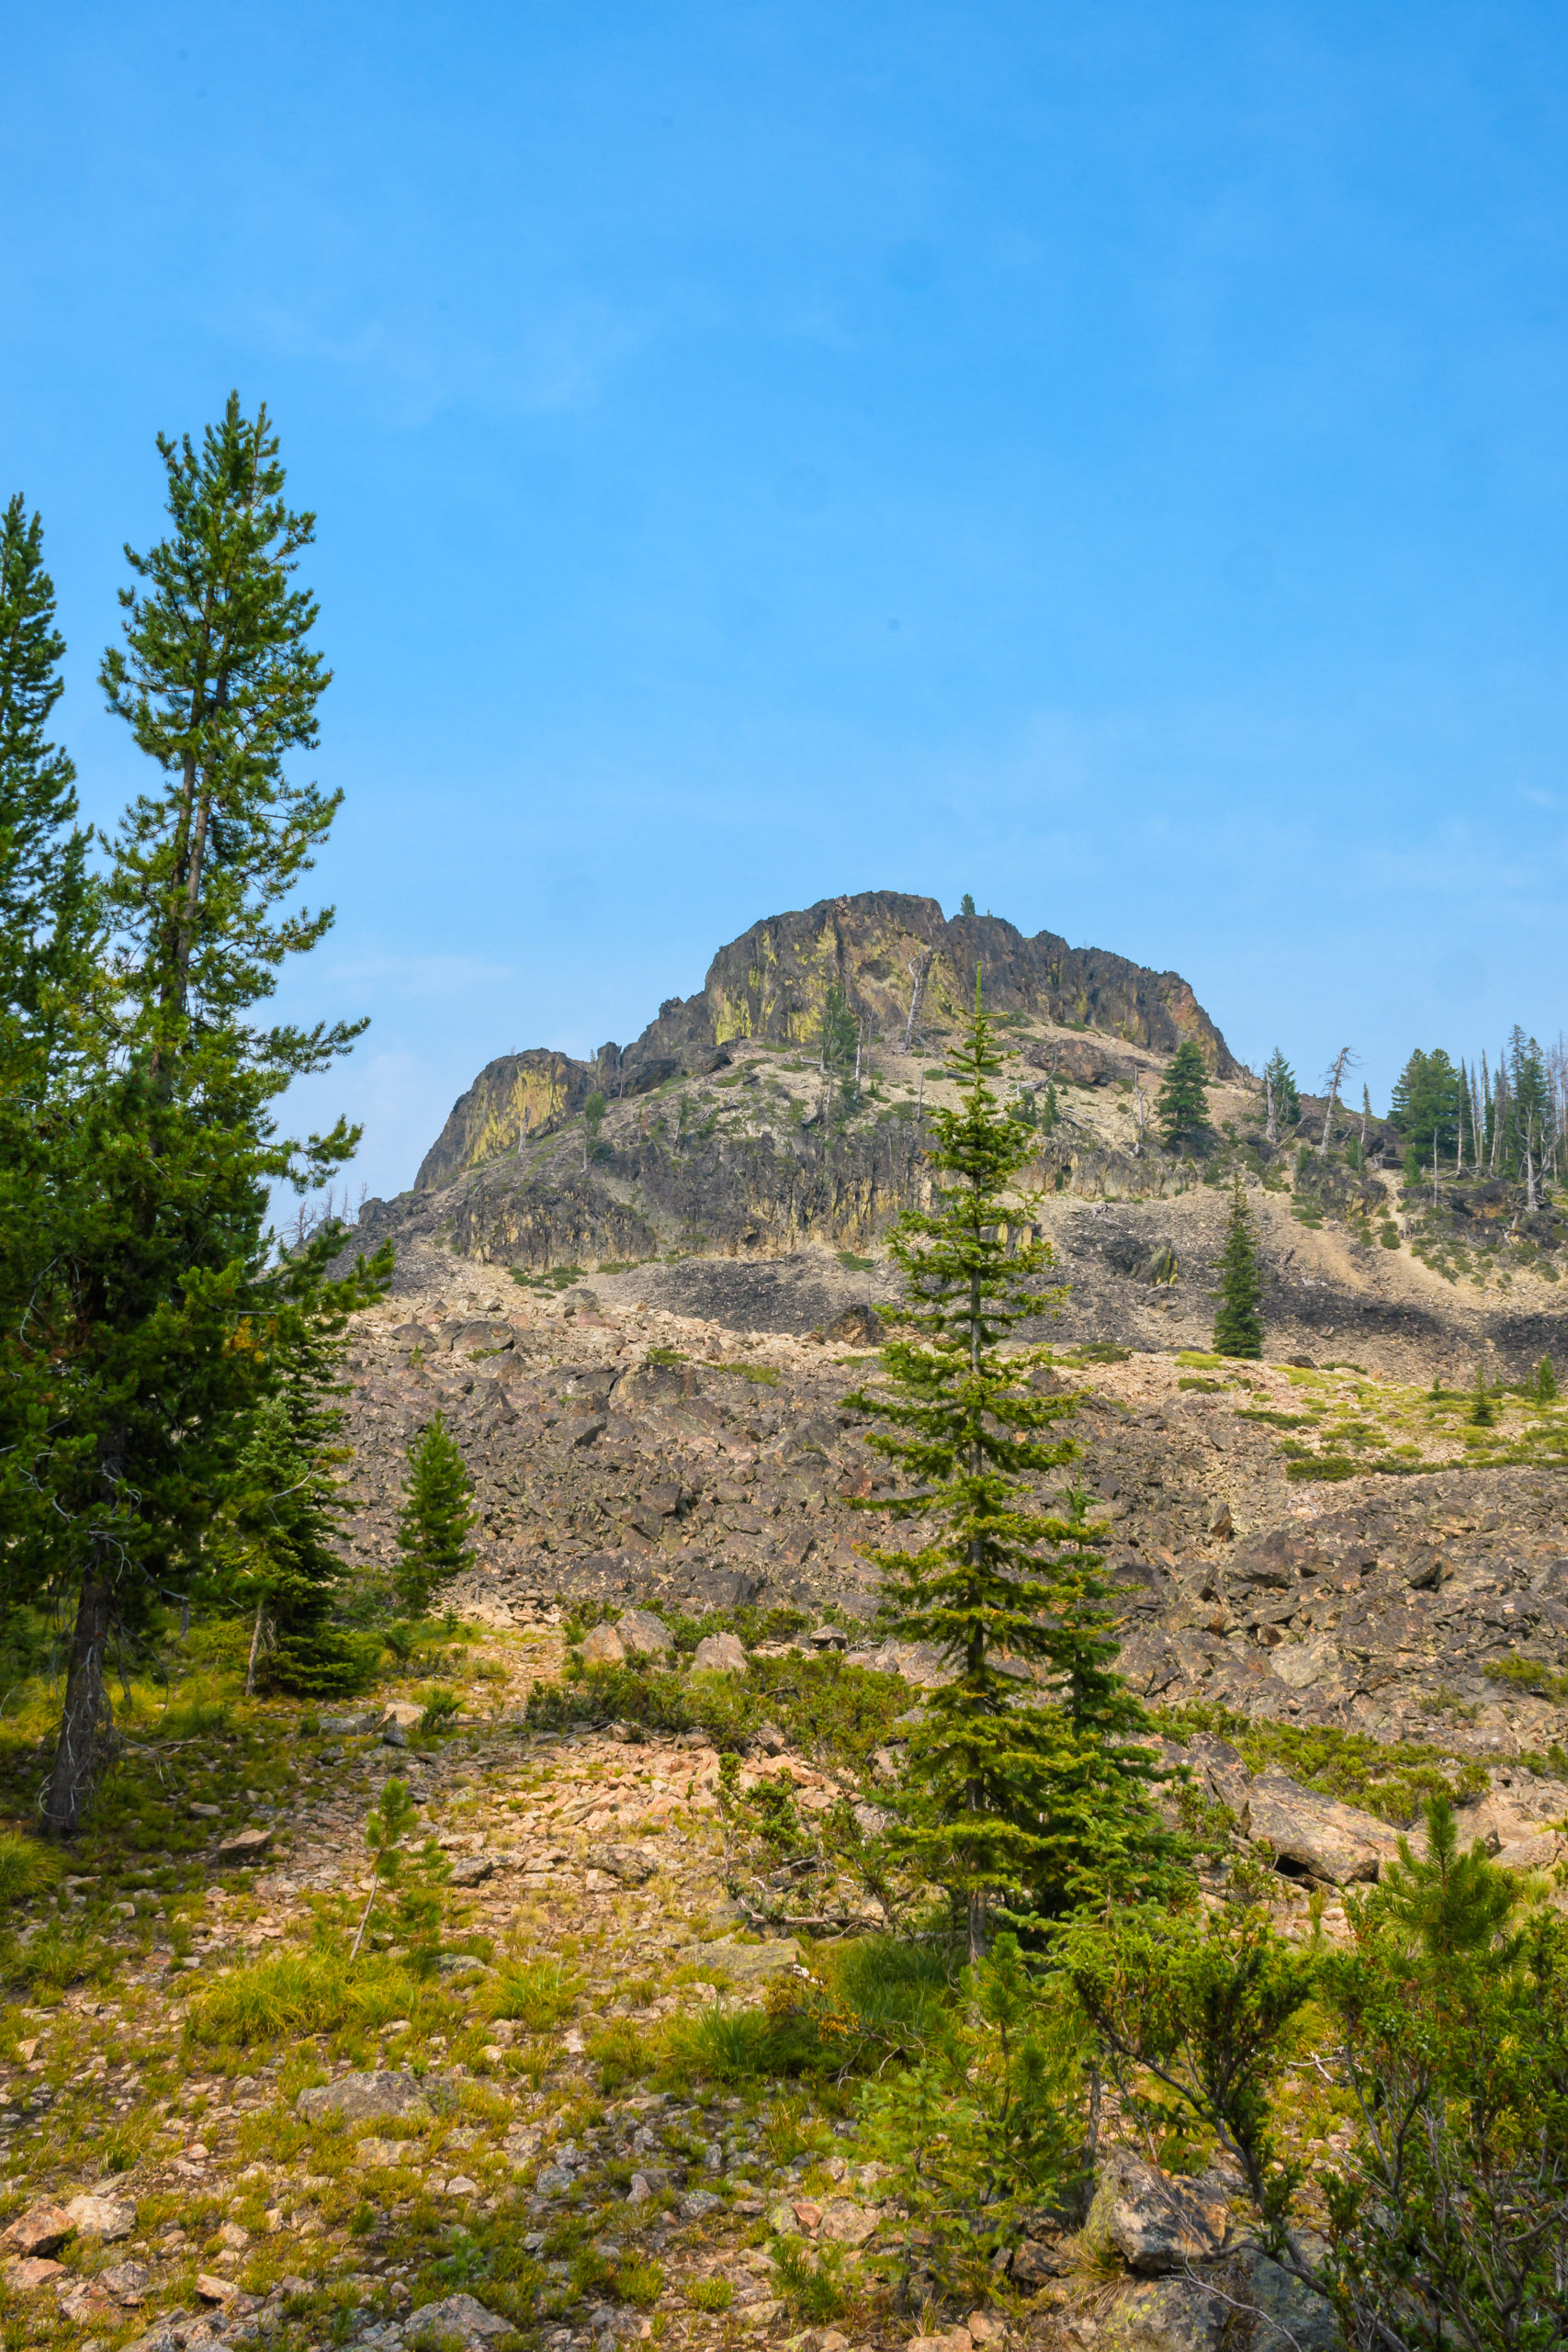 First unobstructed view of Castle Rock